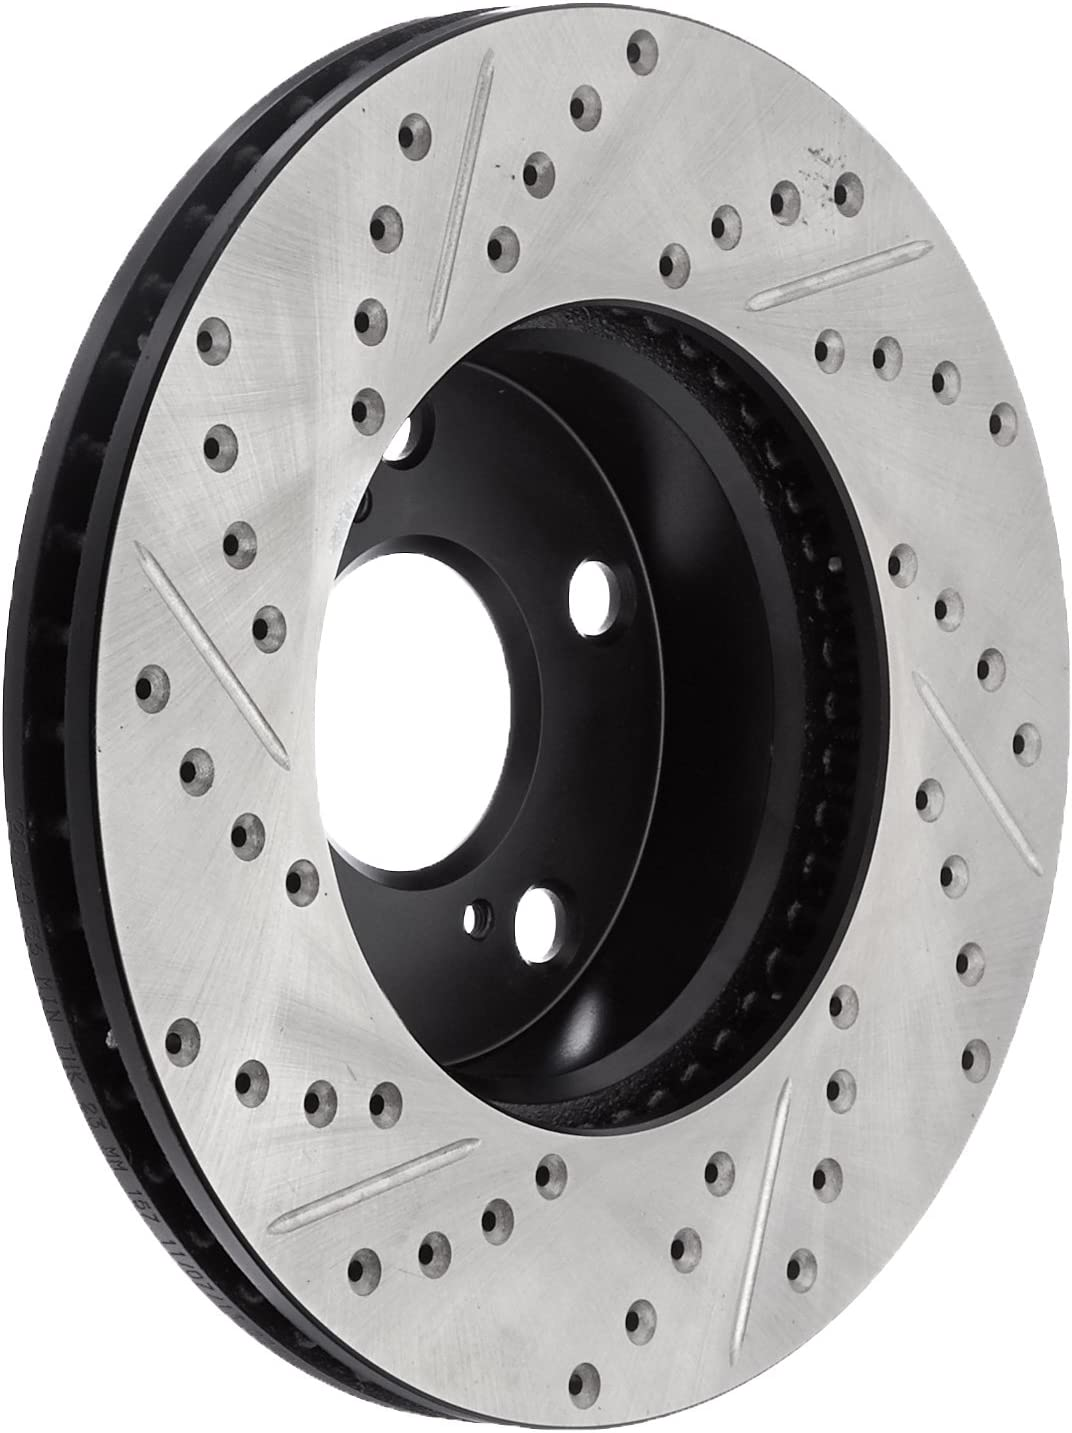 Brake Rotor StopTech 127.44136CL